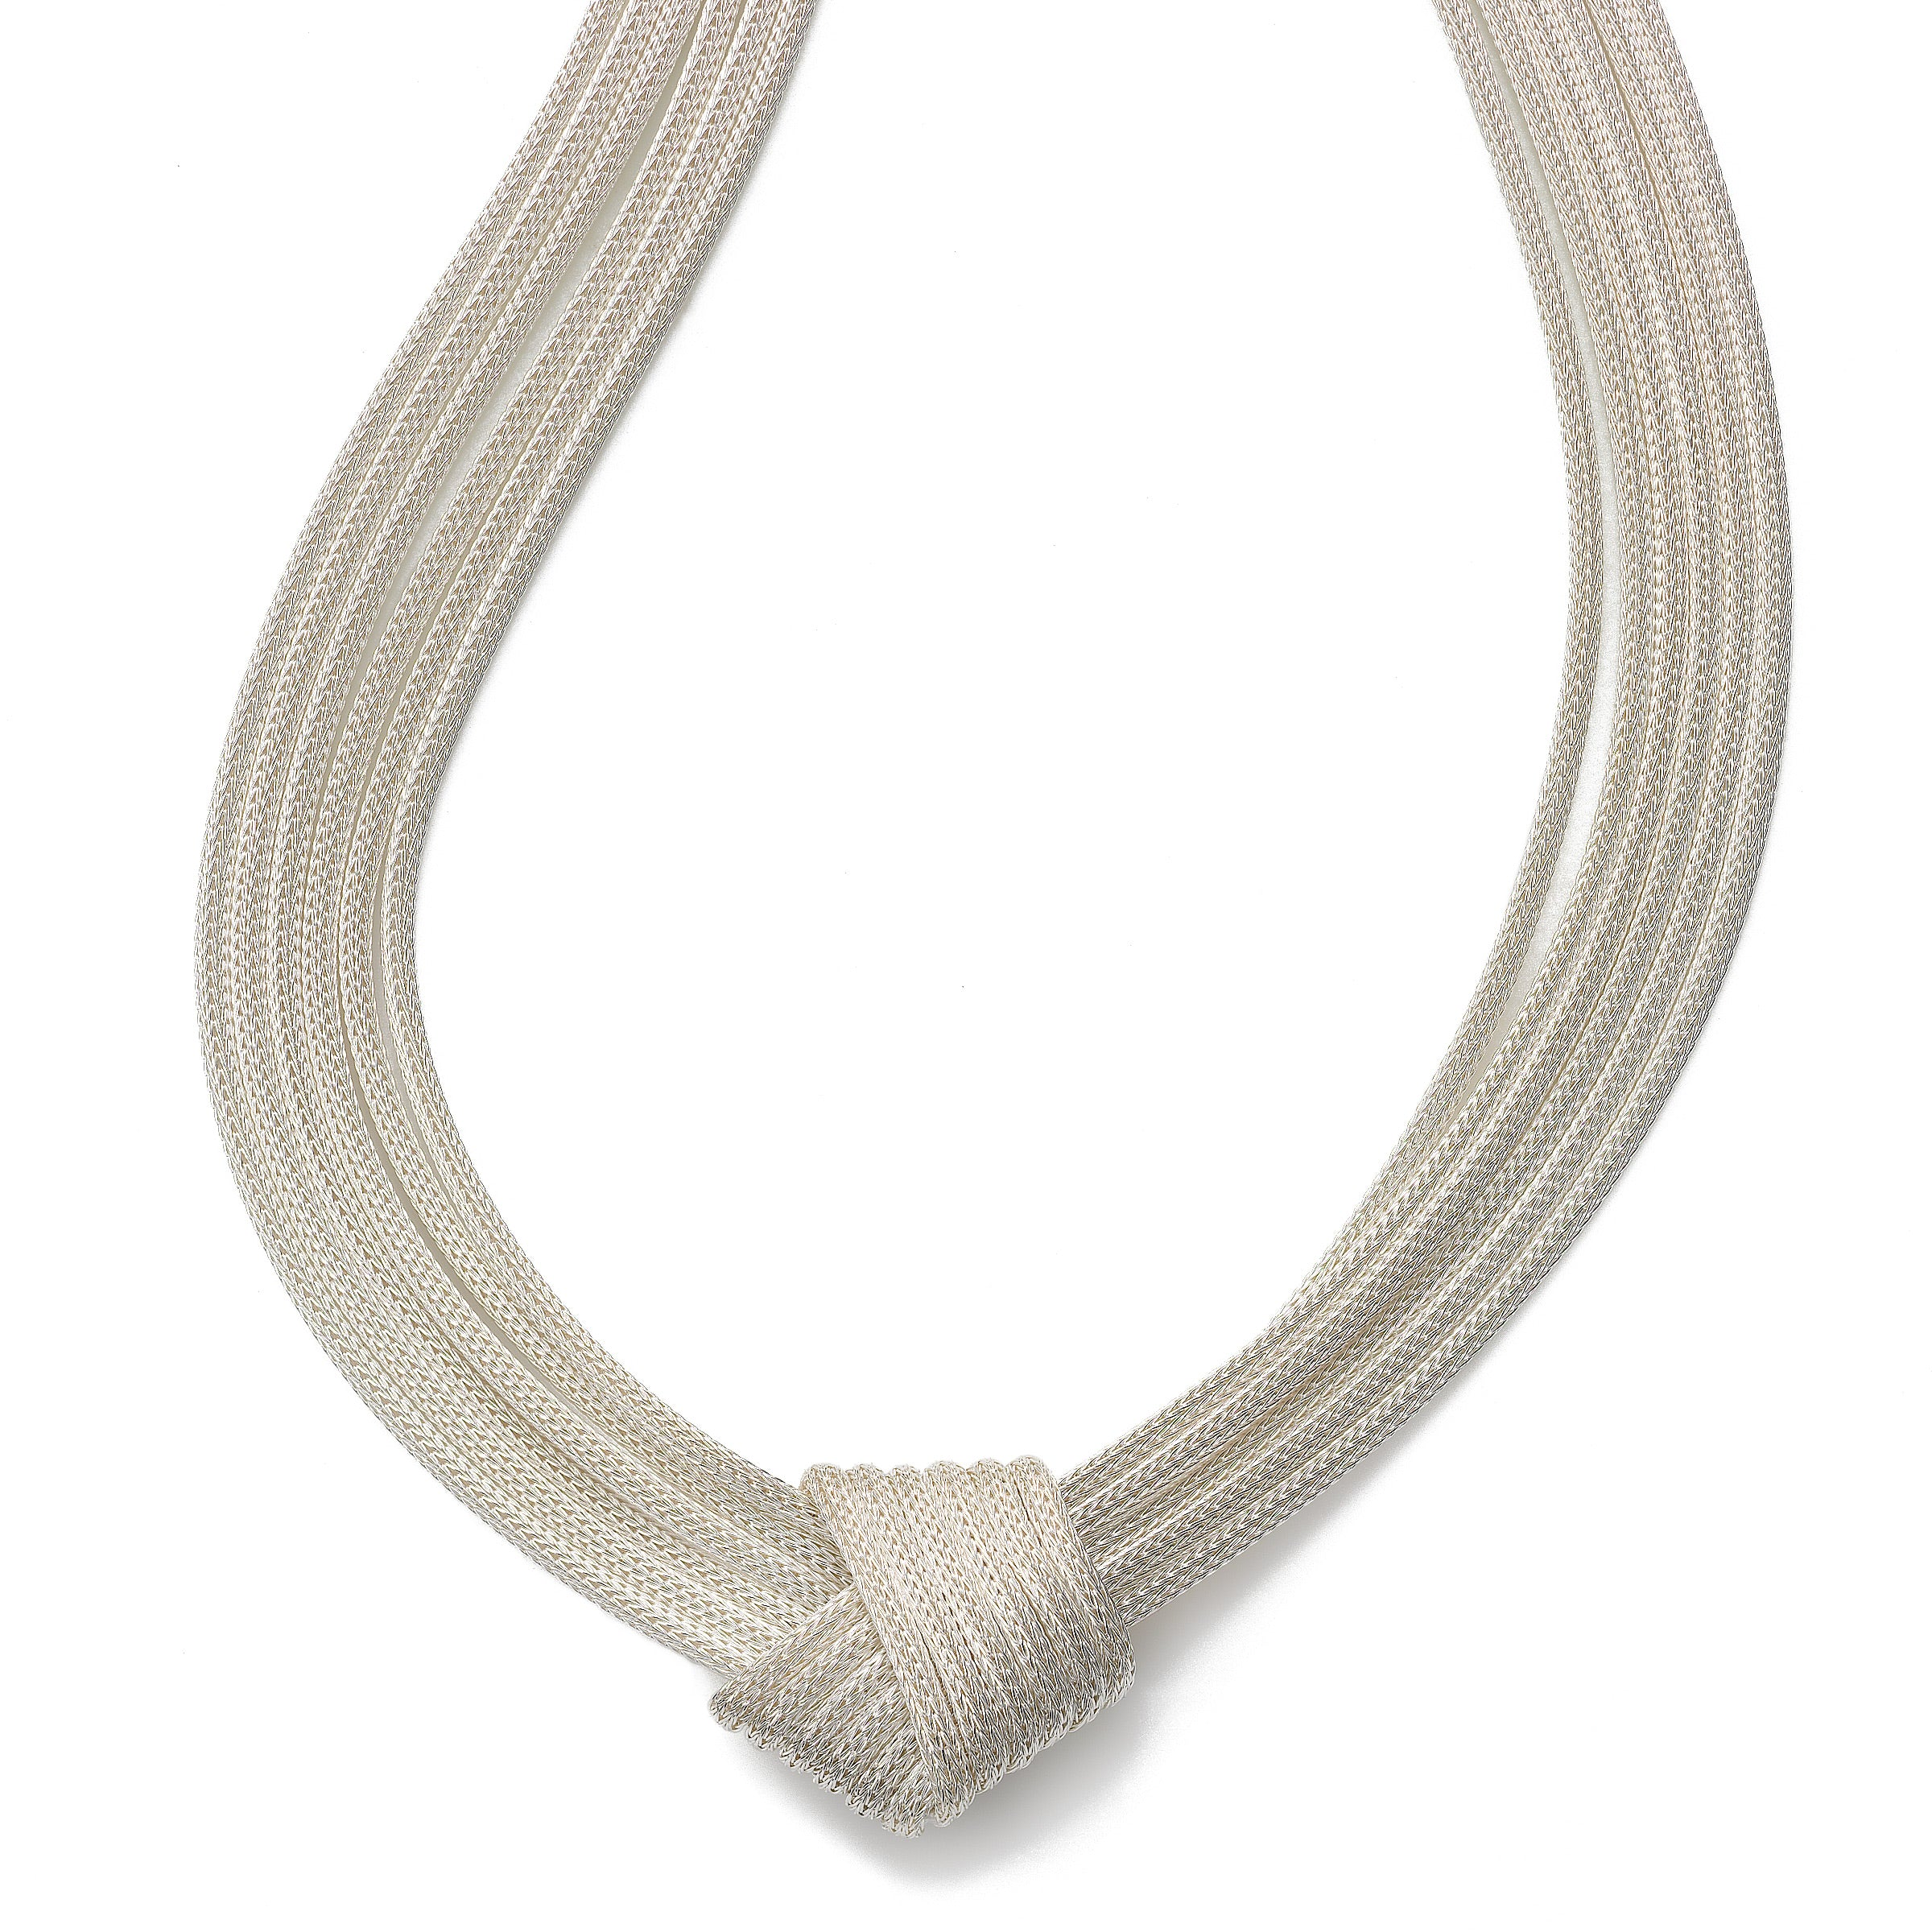 Dramatic Mesh Knot Necklace, 18 Inch, Sterling Silver